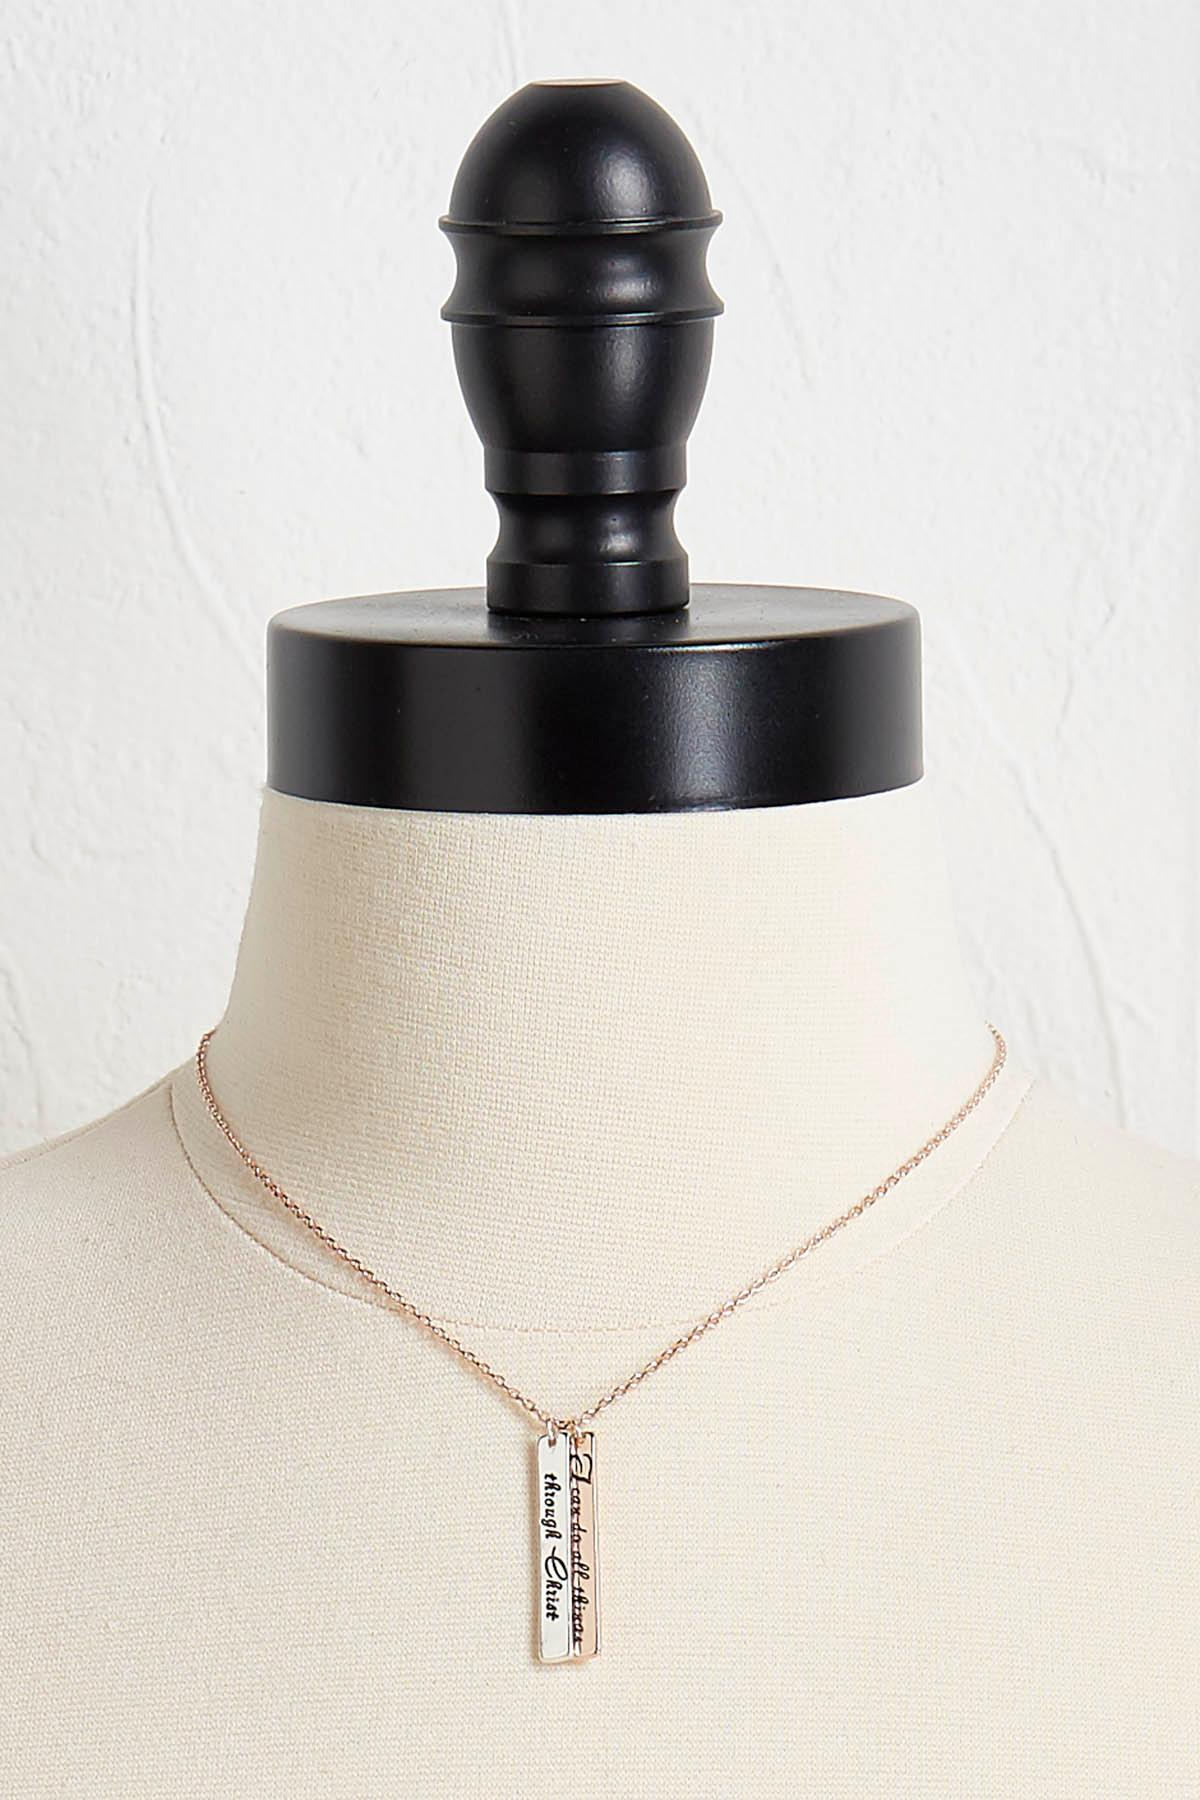 Inspirational Two- Toned Pendant Necklace